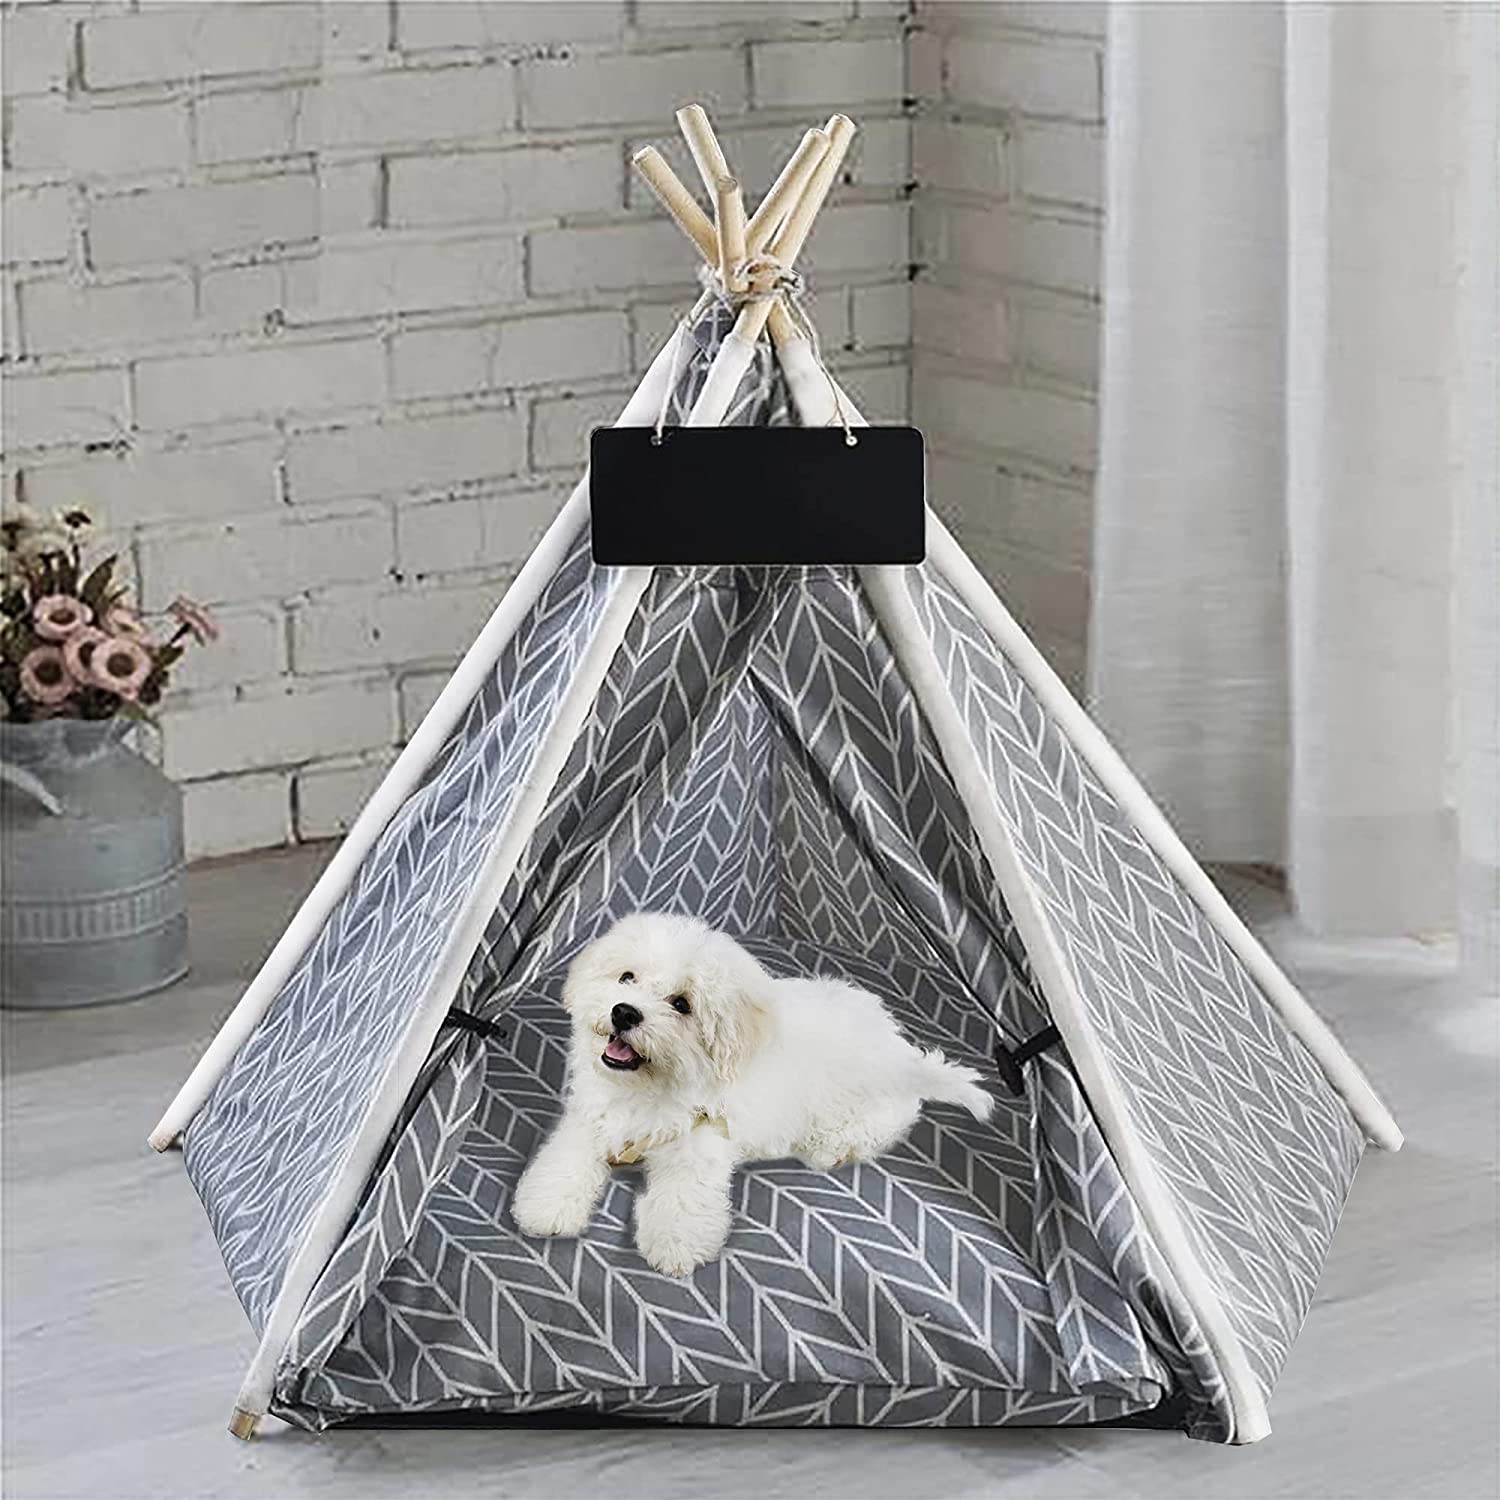 GeerDuo Pet Teepee Portable Tents for Dogs or Small P Cats Seattle Mall Brand Cheap Sale Venue